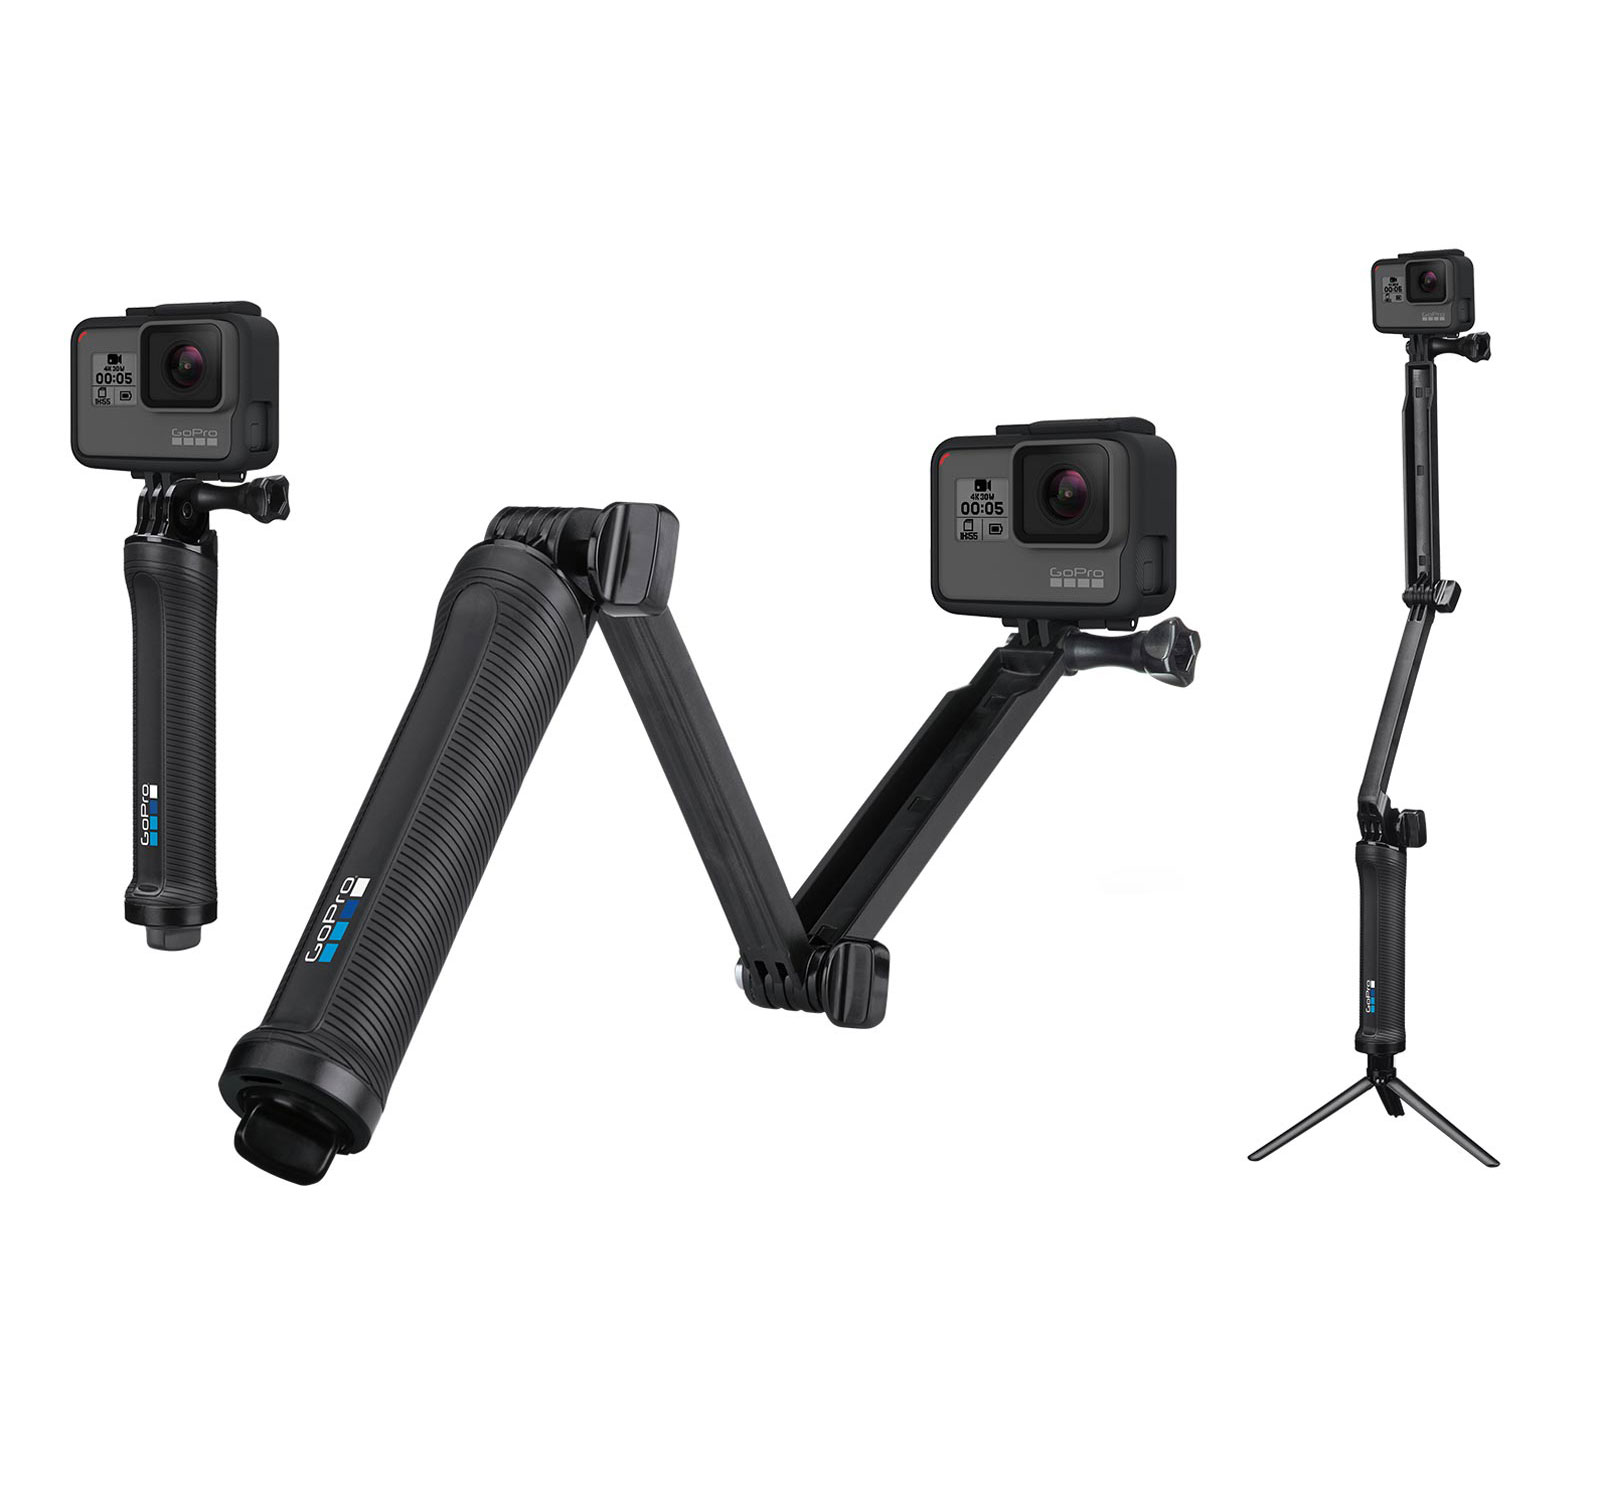 GoPro HERO5 Black Waterproof 4K Cam & GoPro 3 Way Tripod